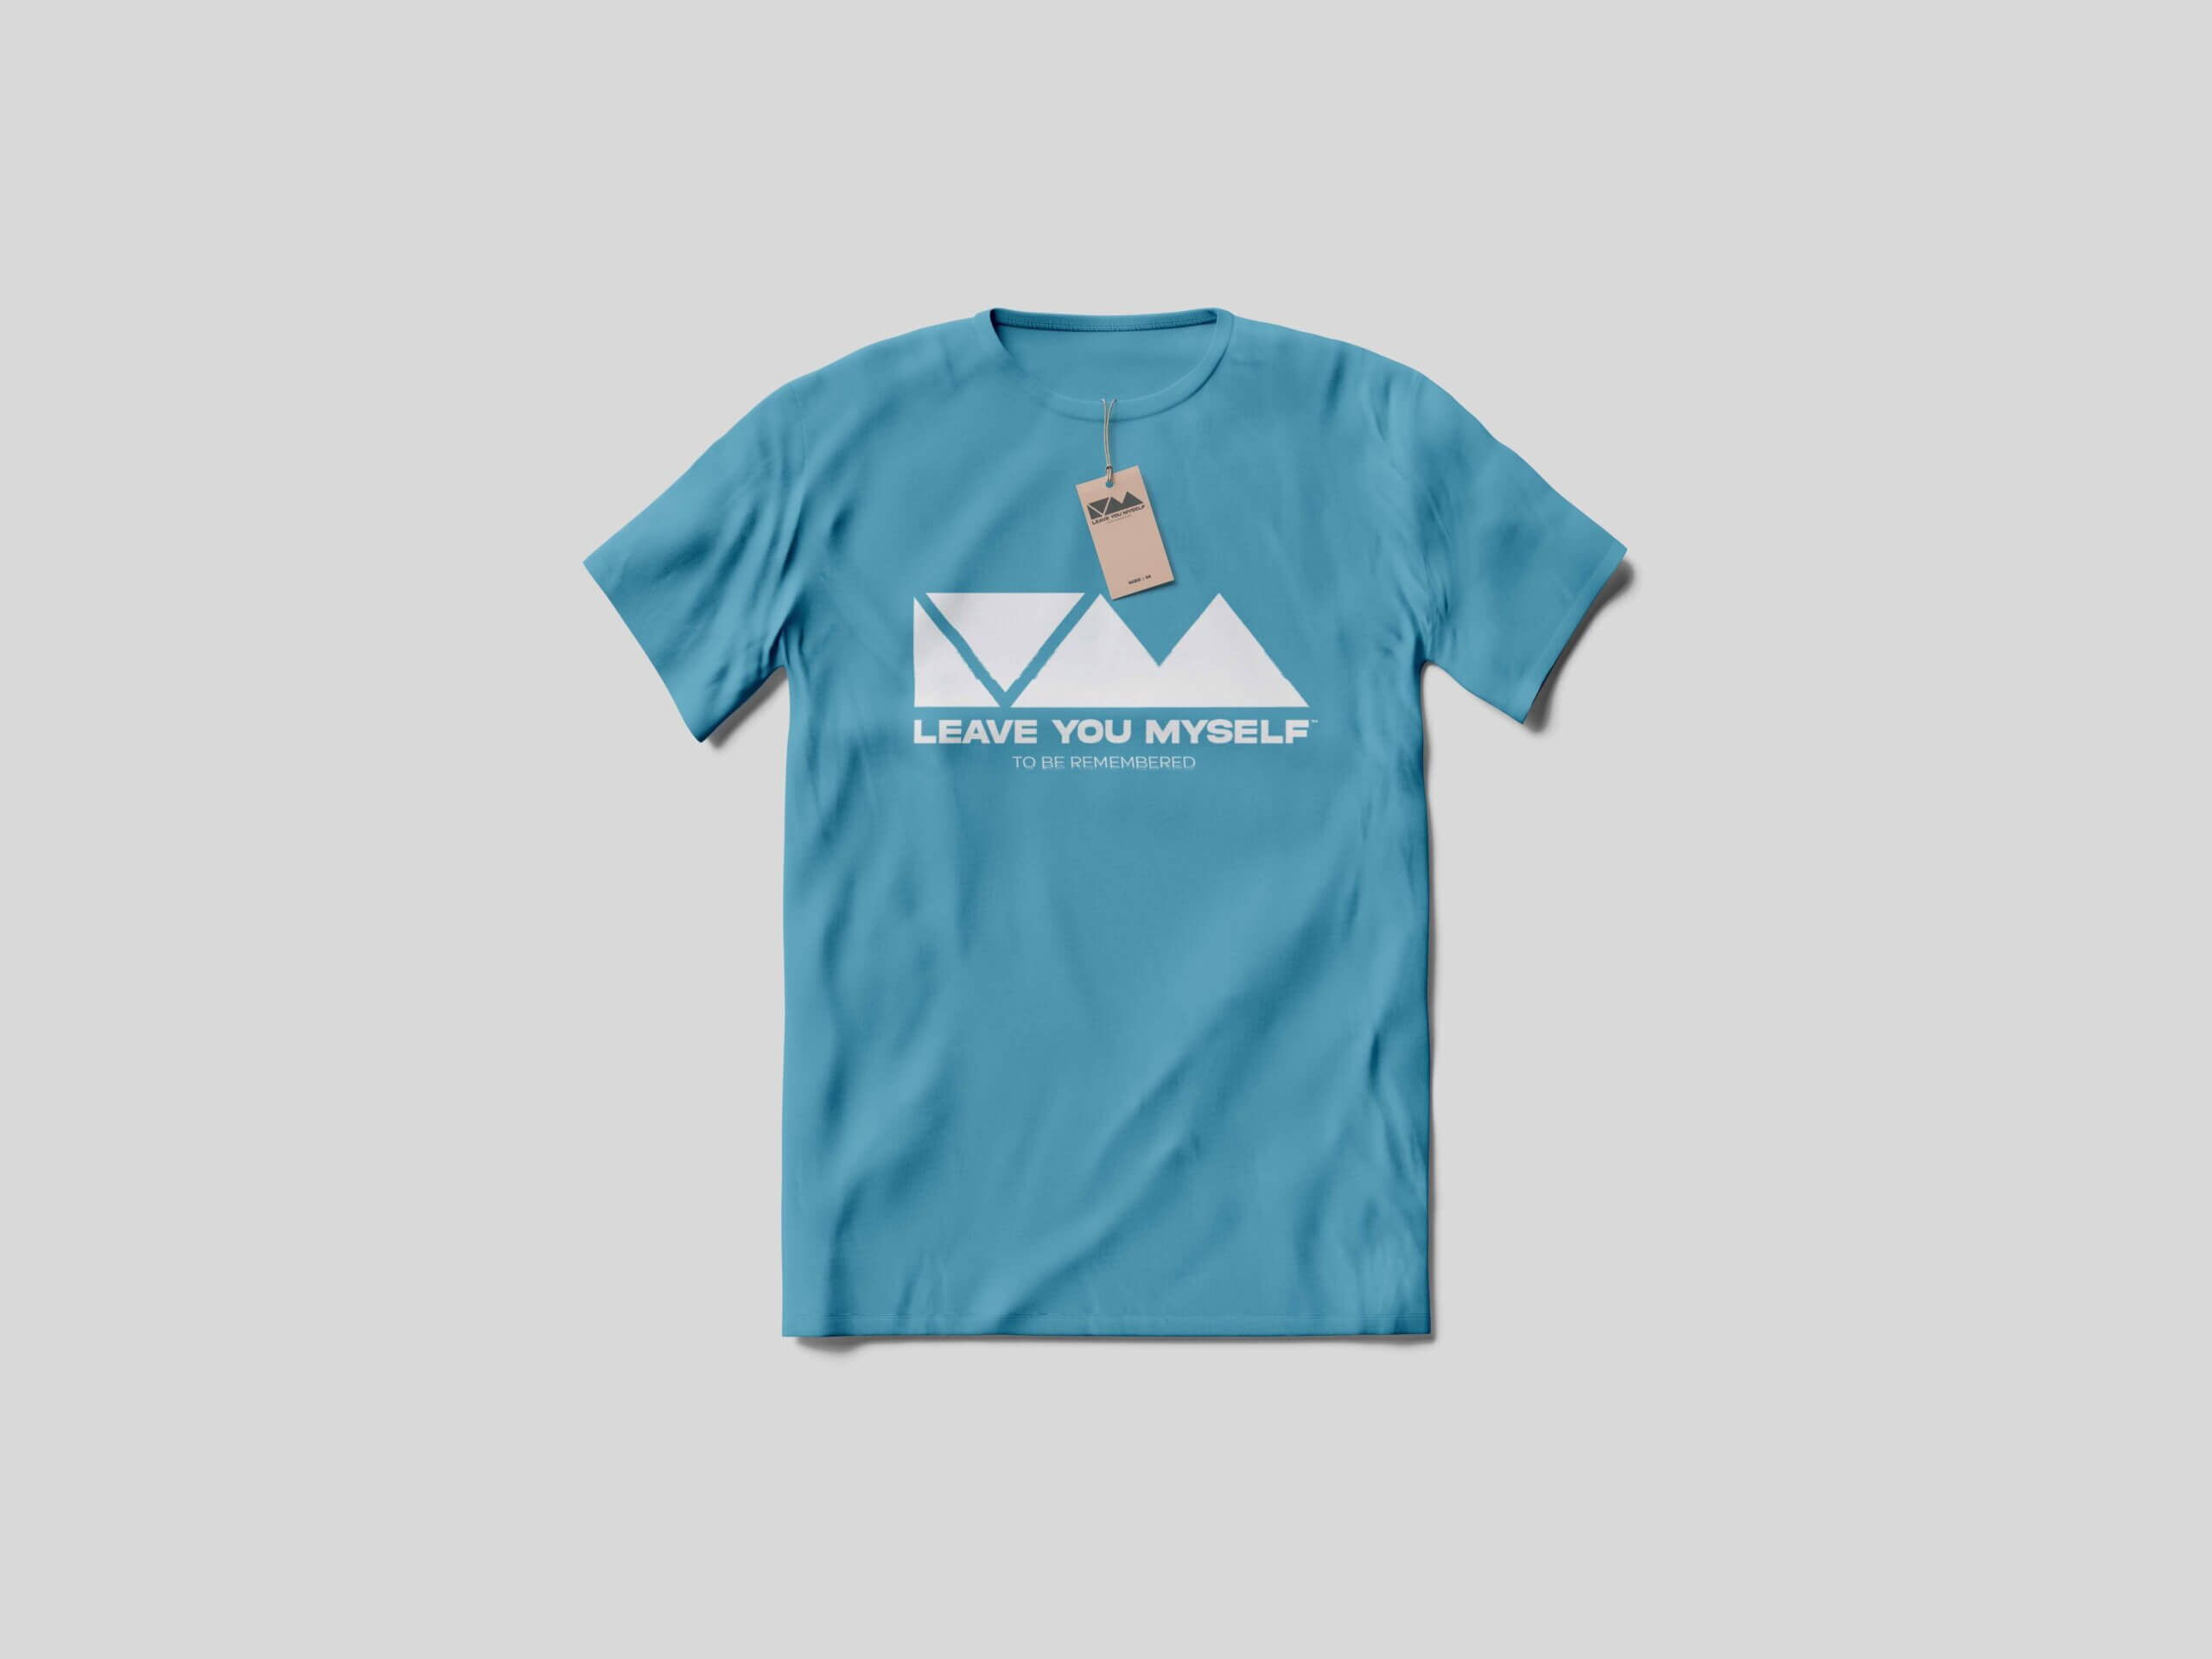 T-Shirt With Tag - Leave You Myself